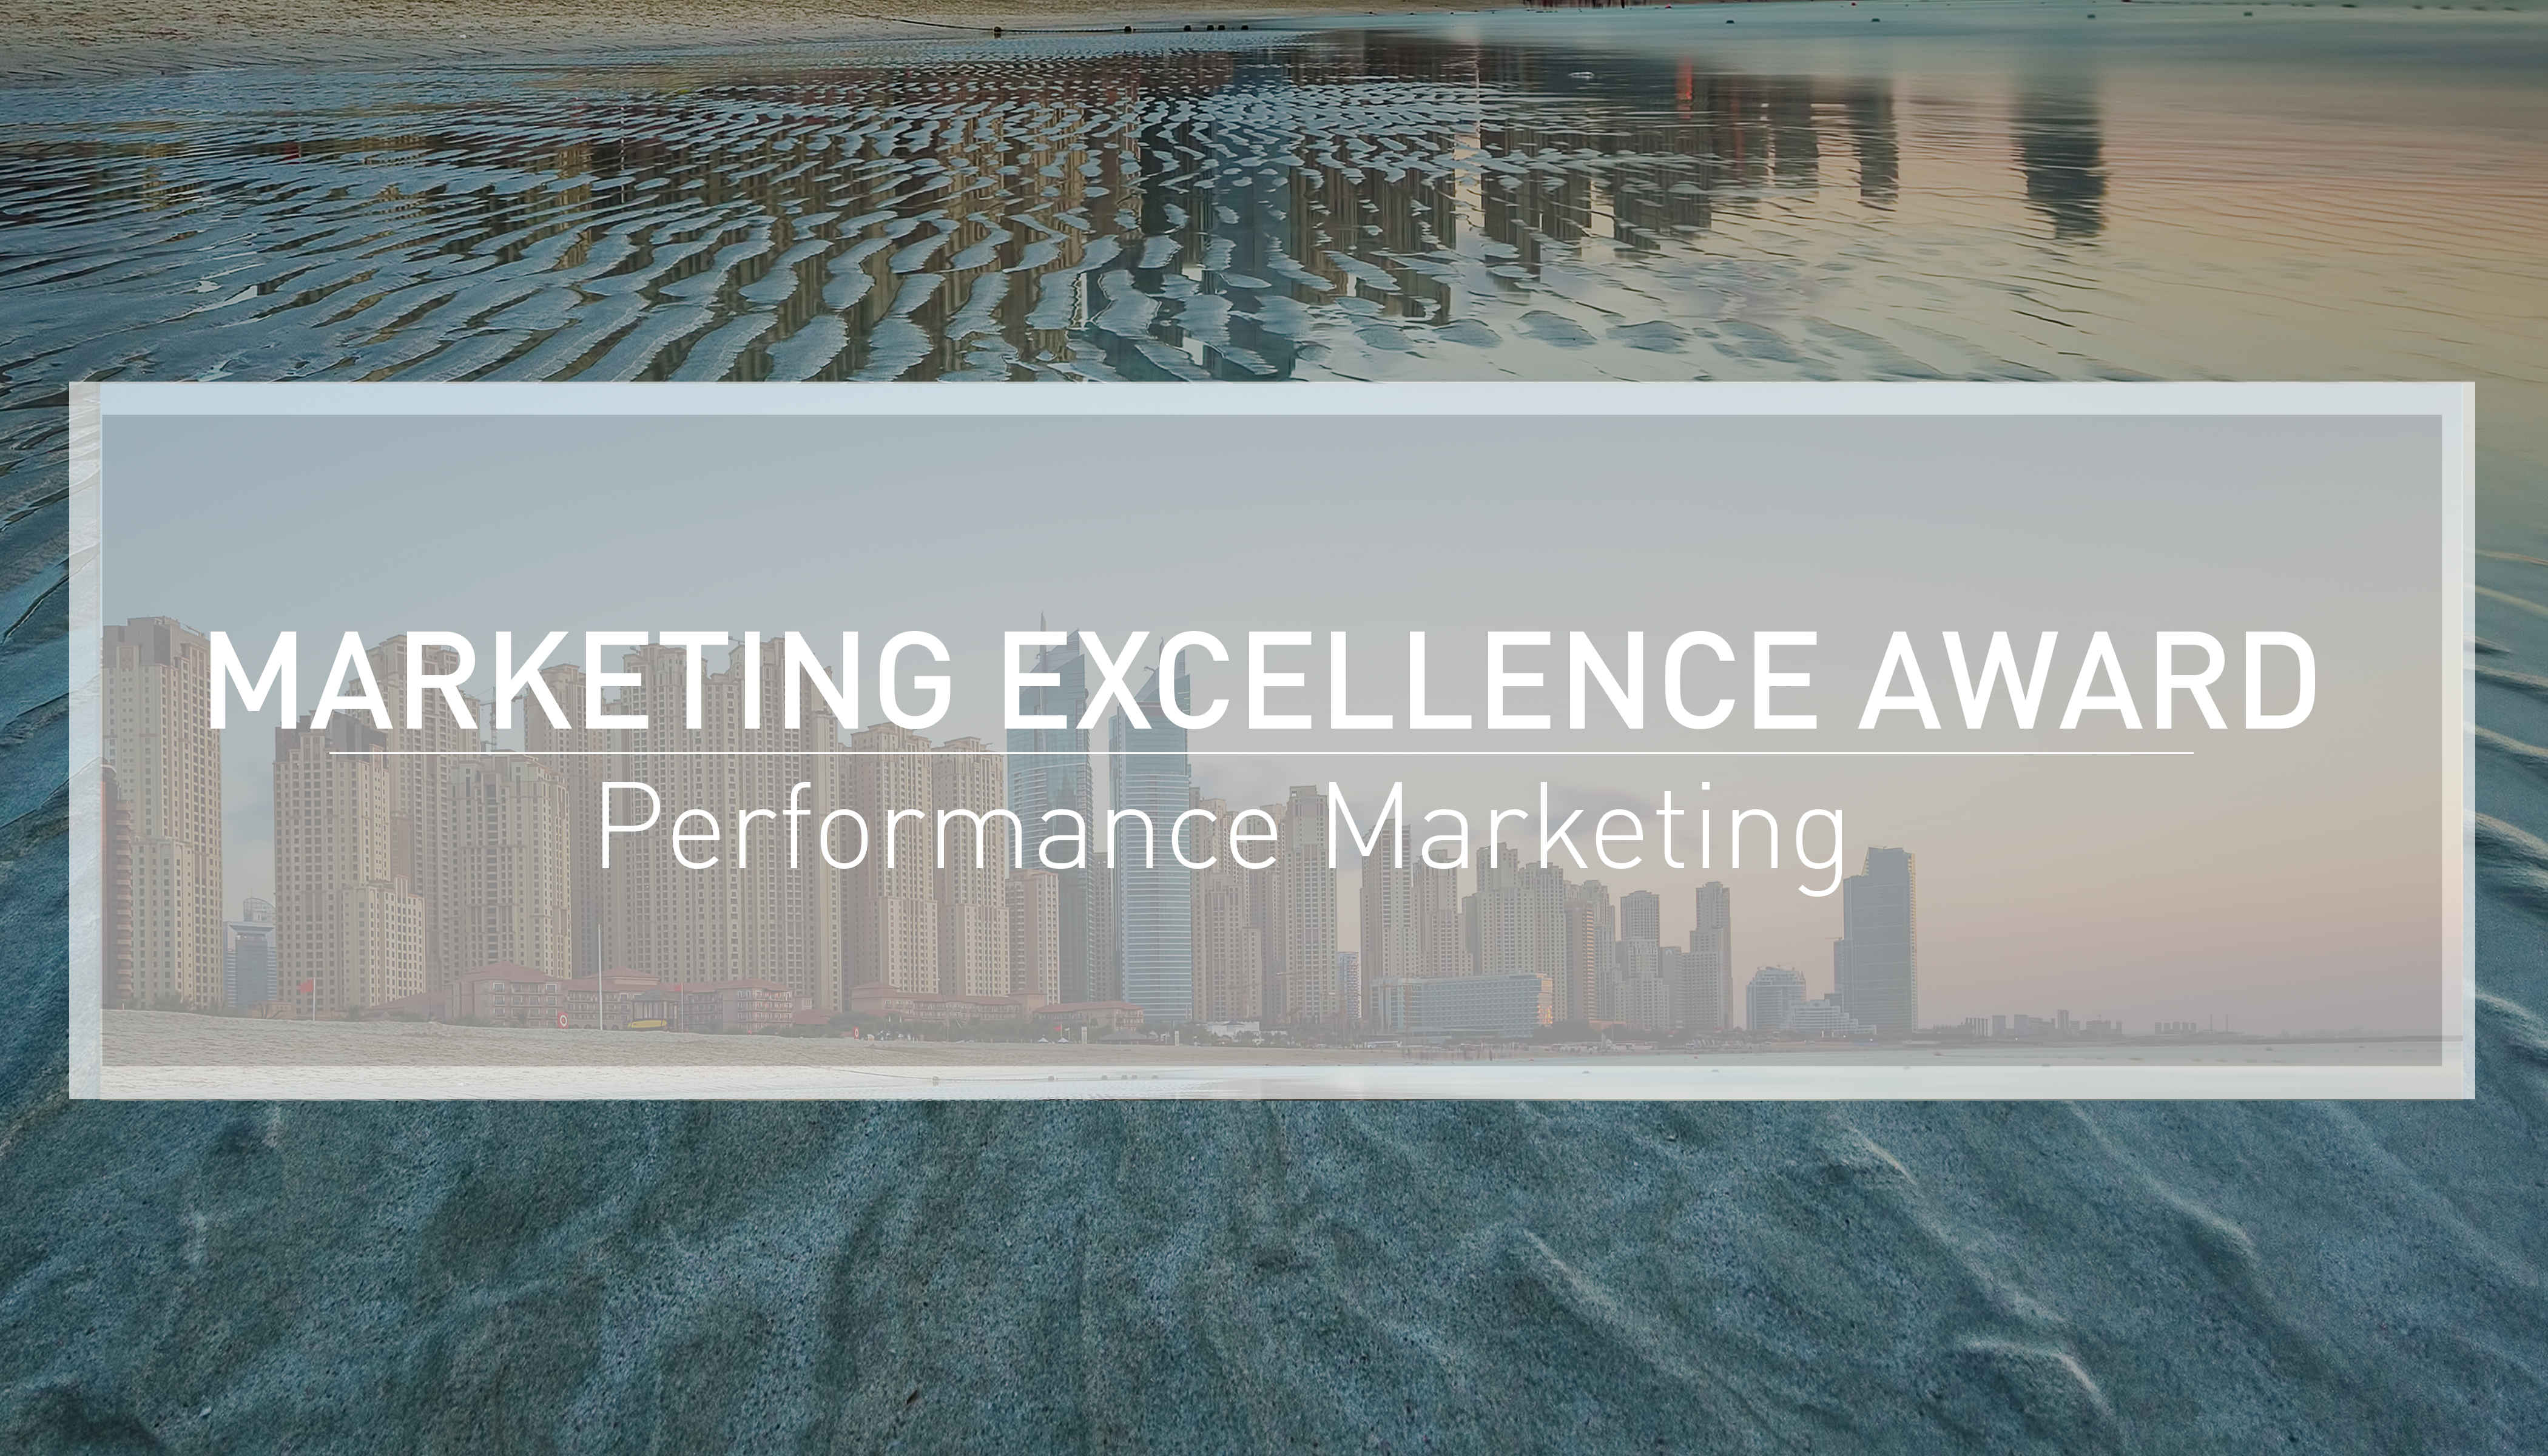 Dwas intuit campaign recently honored for excellence in performance dwas intuit campaign recently honored for excellence in performance marketing at marketing magazine awards in singapore dwa thecheapjerseys Gallery